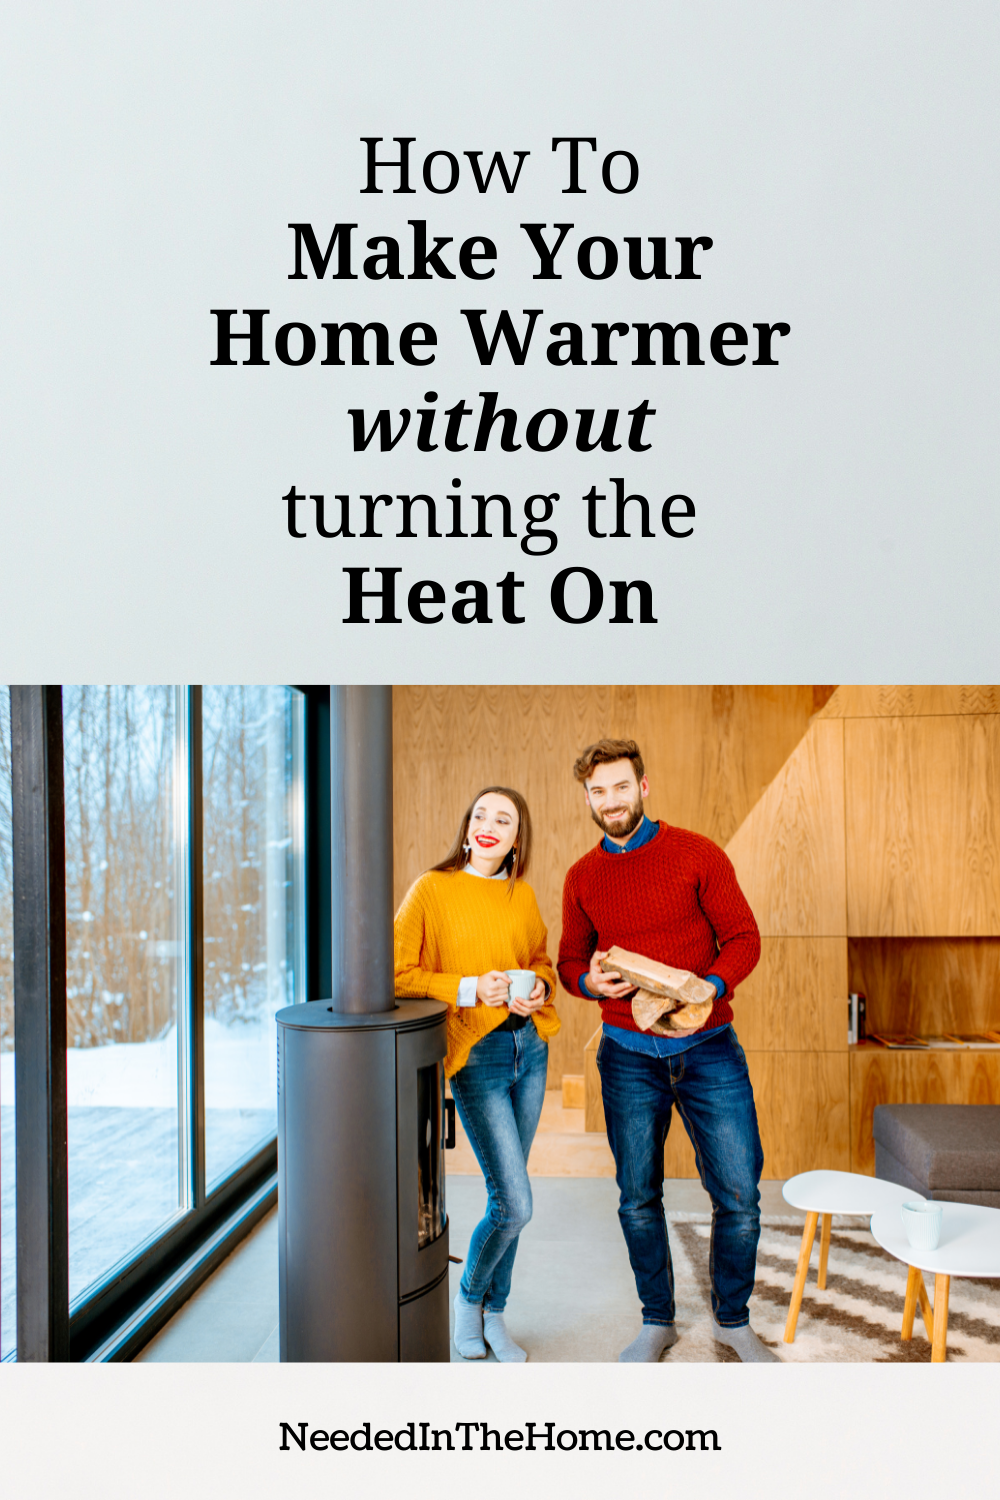 pinterest-pin-description how to make your home warmer without turning the heat on couple leaning on fireplace in winter drinking coffee holding wood neededinthehome